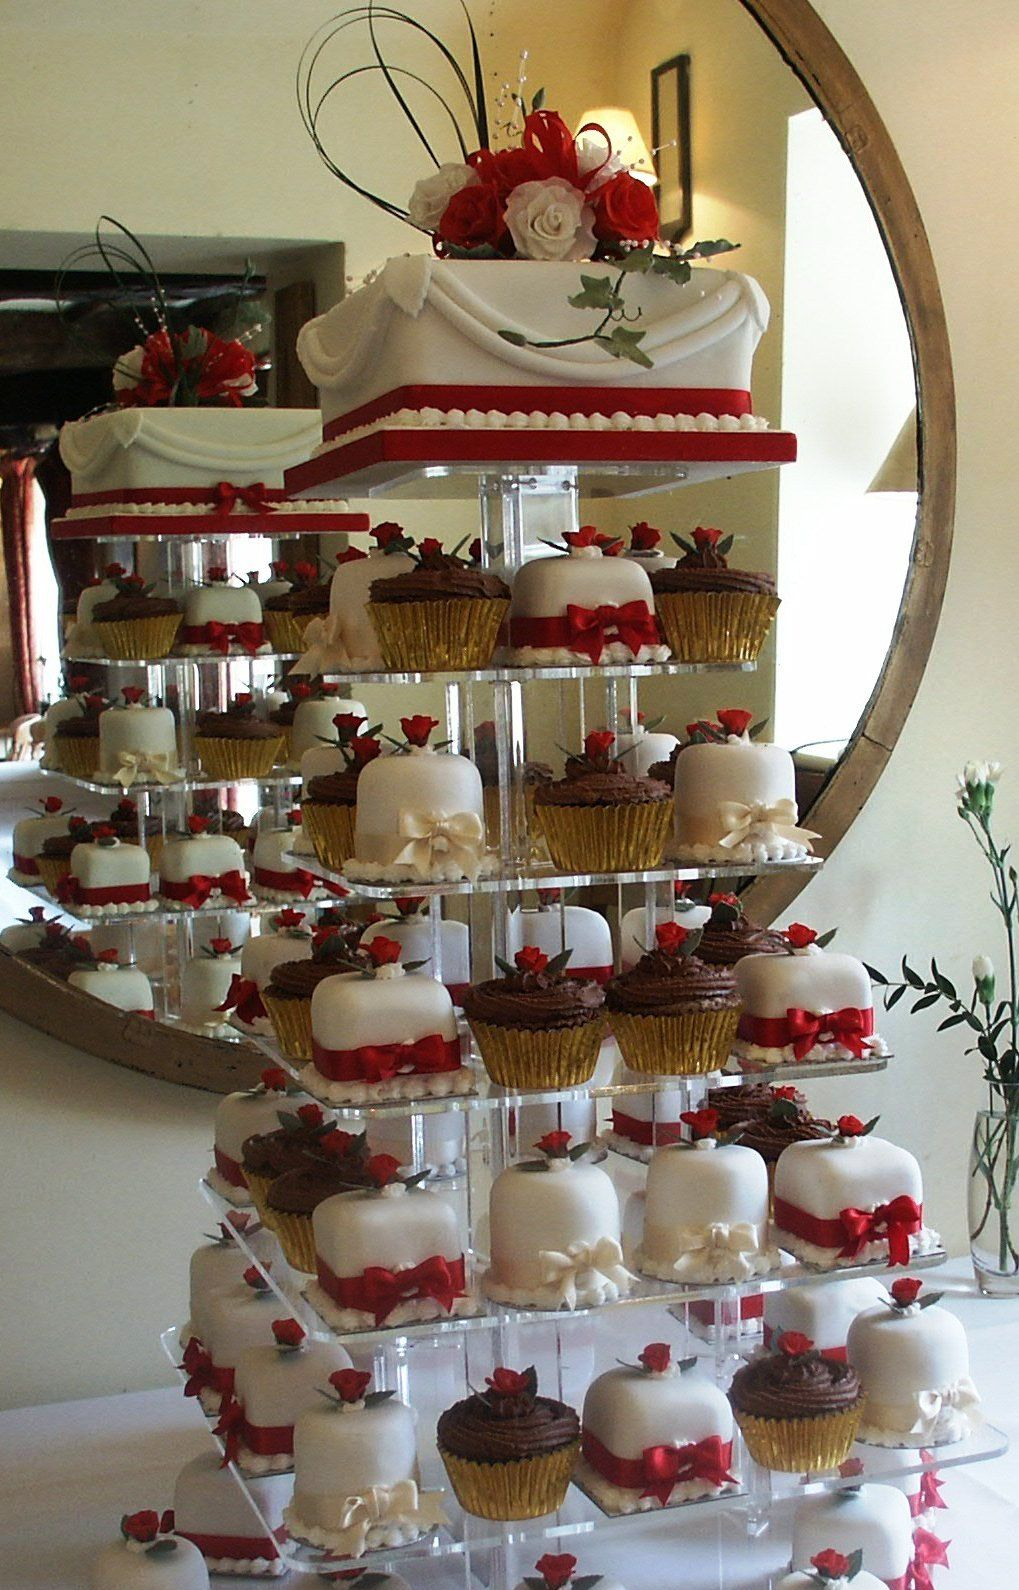 Mini Wedding Cakes And Cup Cake Displayed On A 7 Tier Acrylic Stand For Your